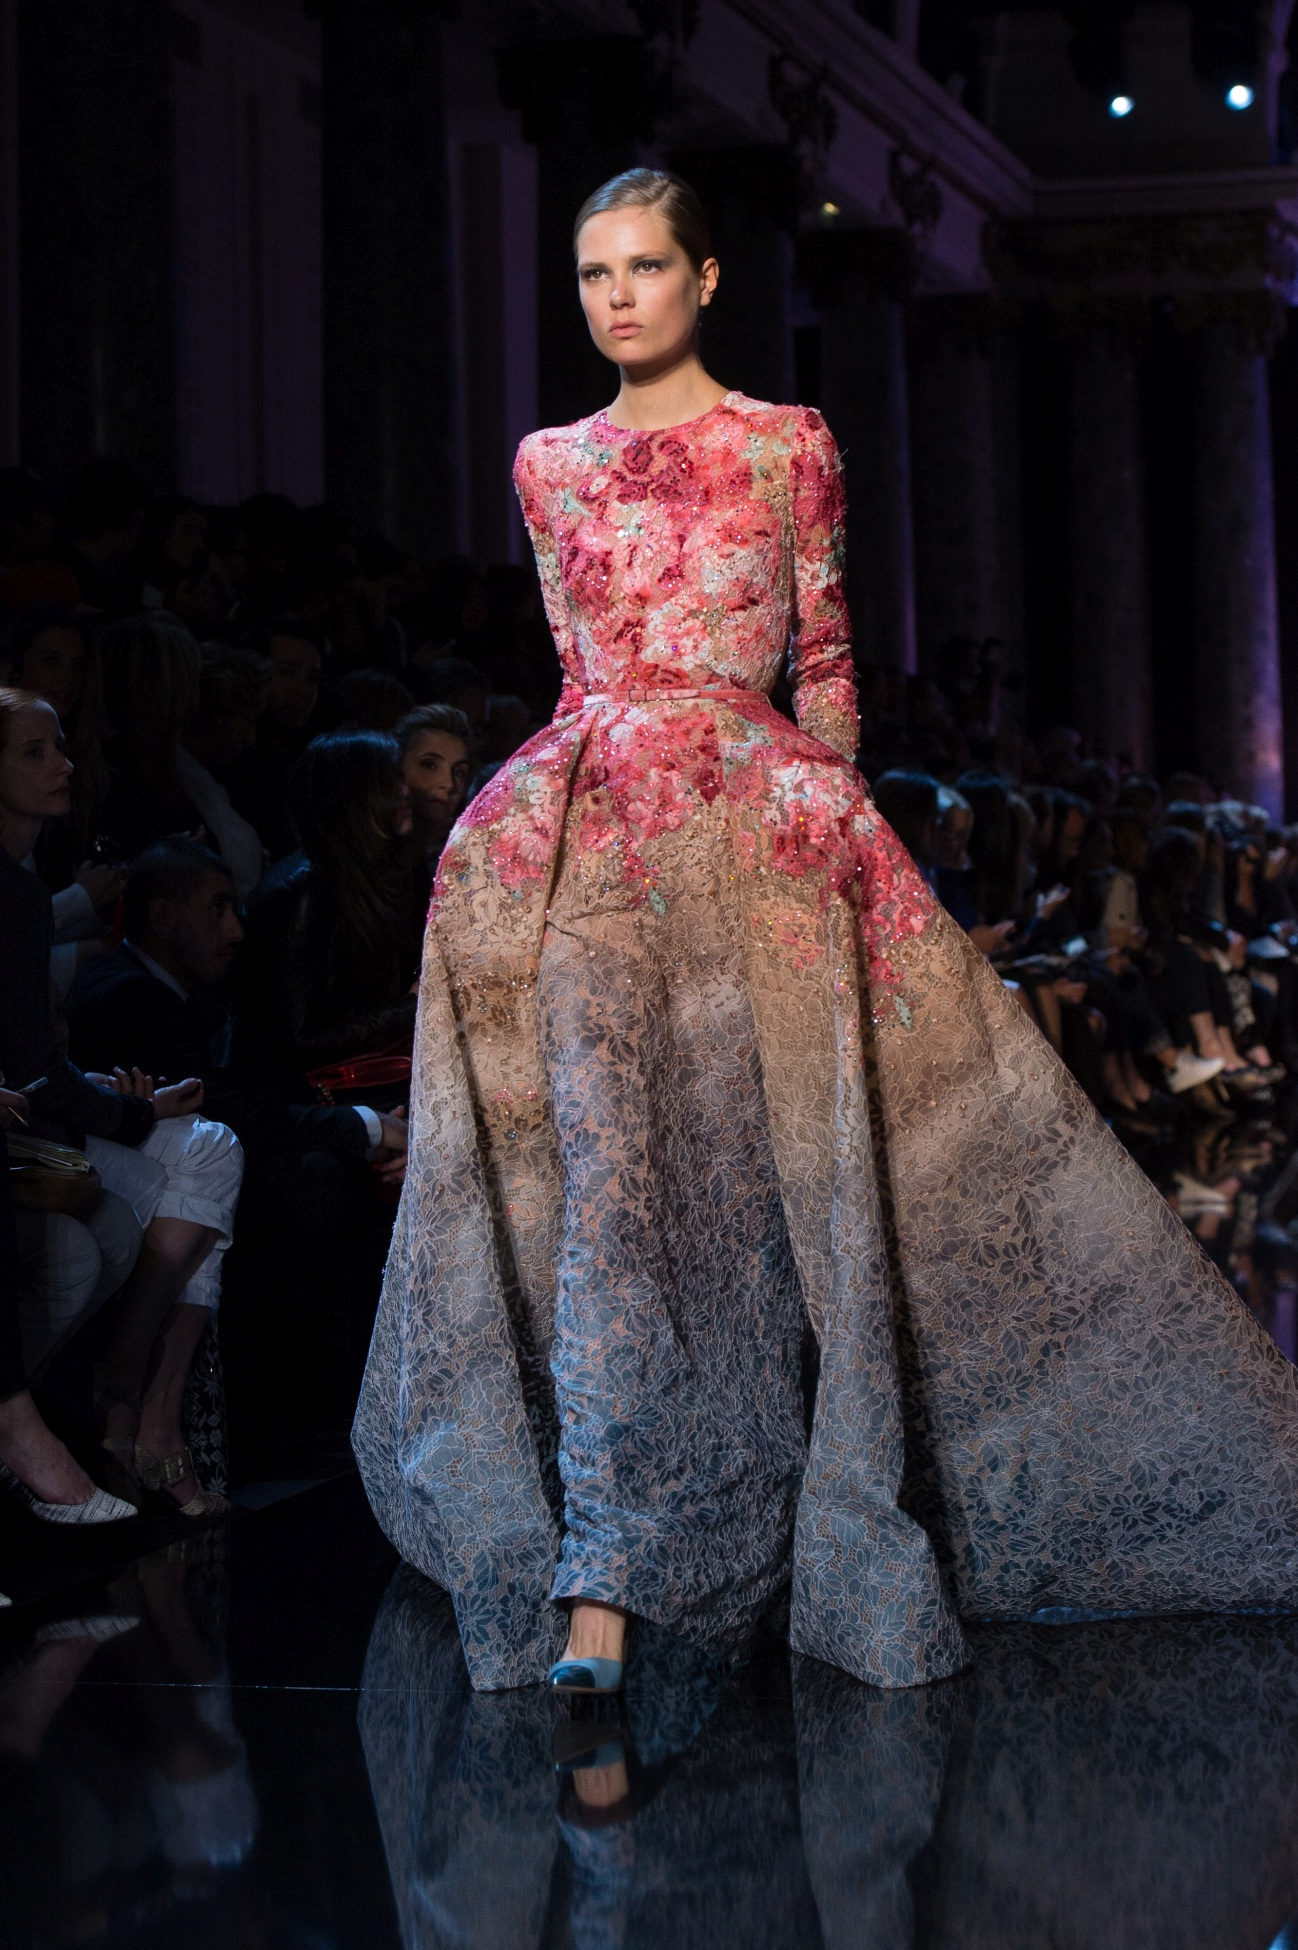 ELIE SAAB Couture FW 2014/15